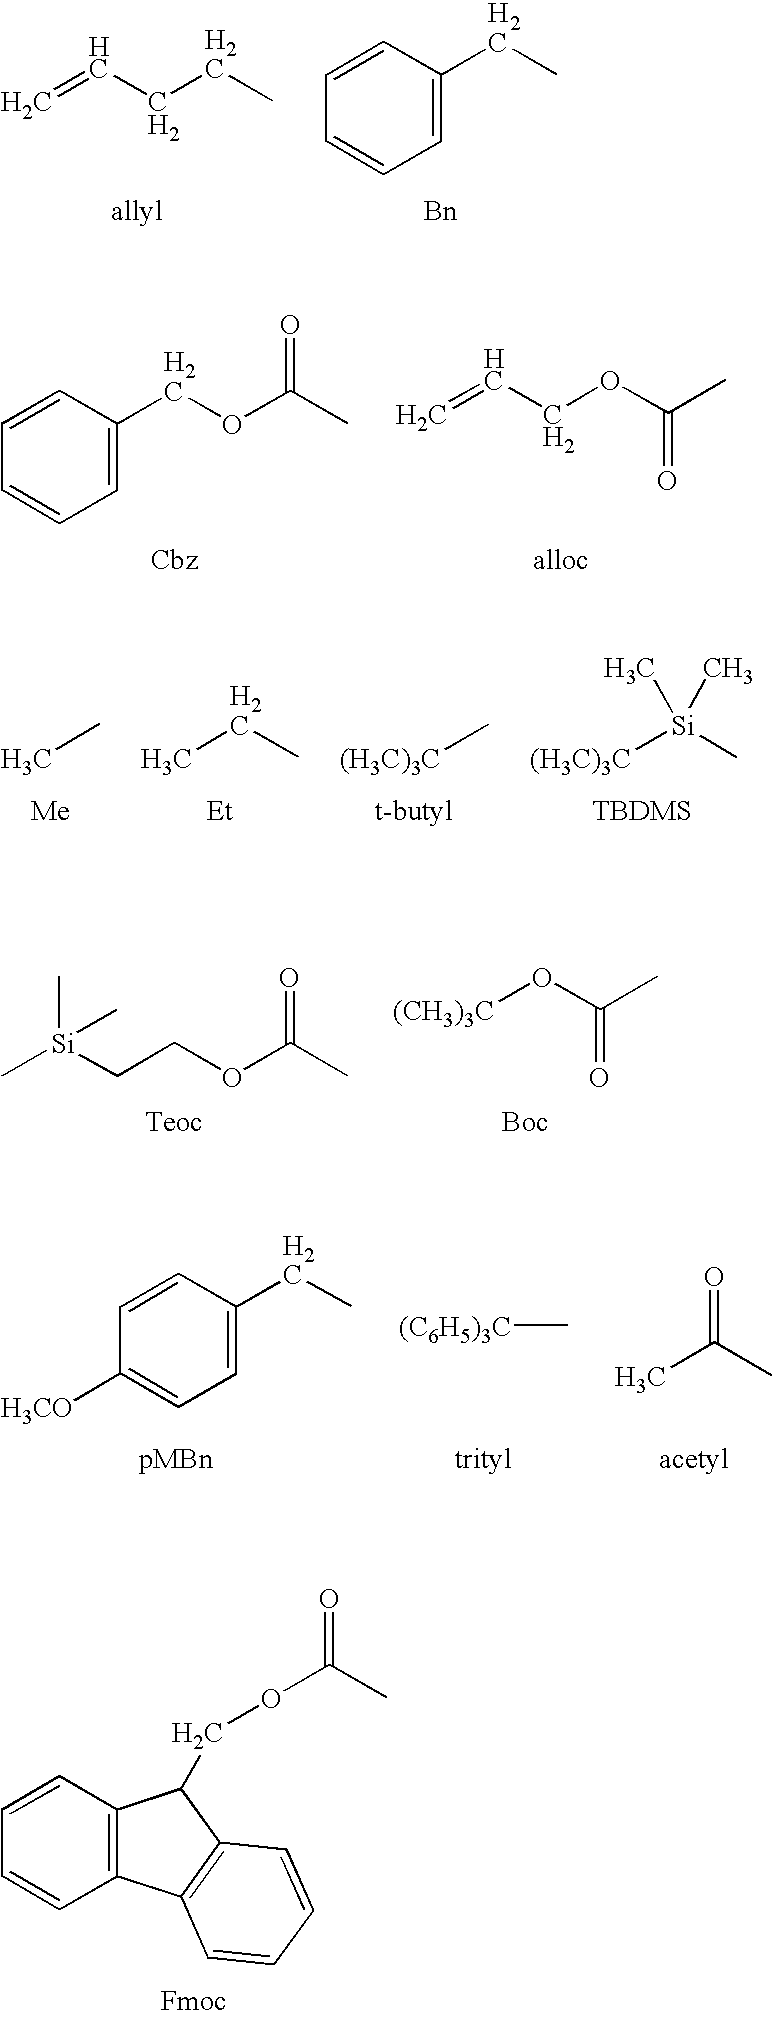 Us20080085277a1 Novel Antigen Binding Polypeptides And Their Uses Midland 1165 Diagram 18 19 805 Figure 20080410 C00004